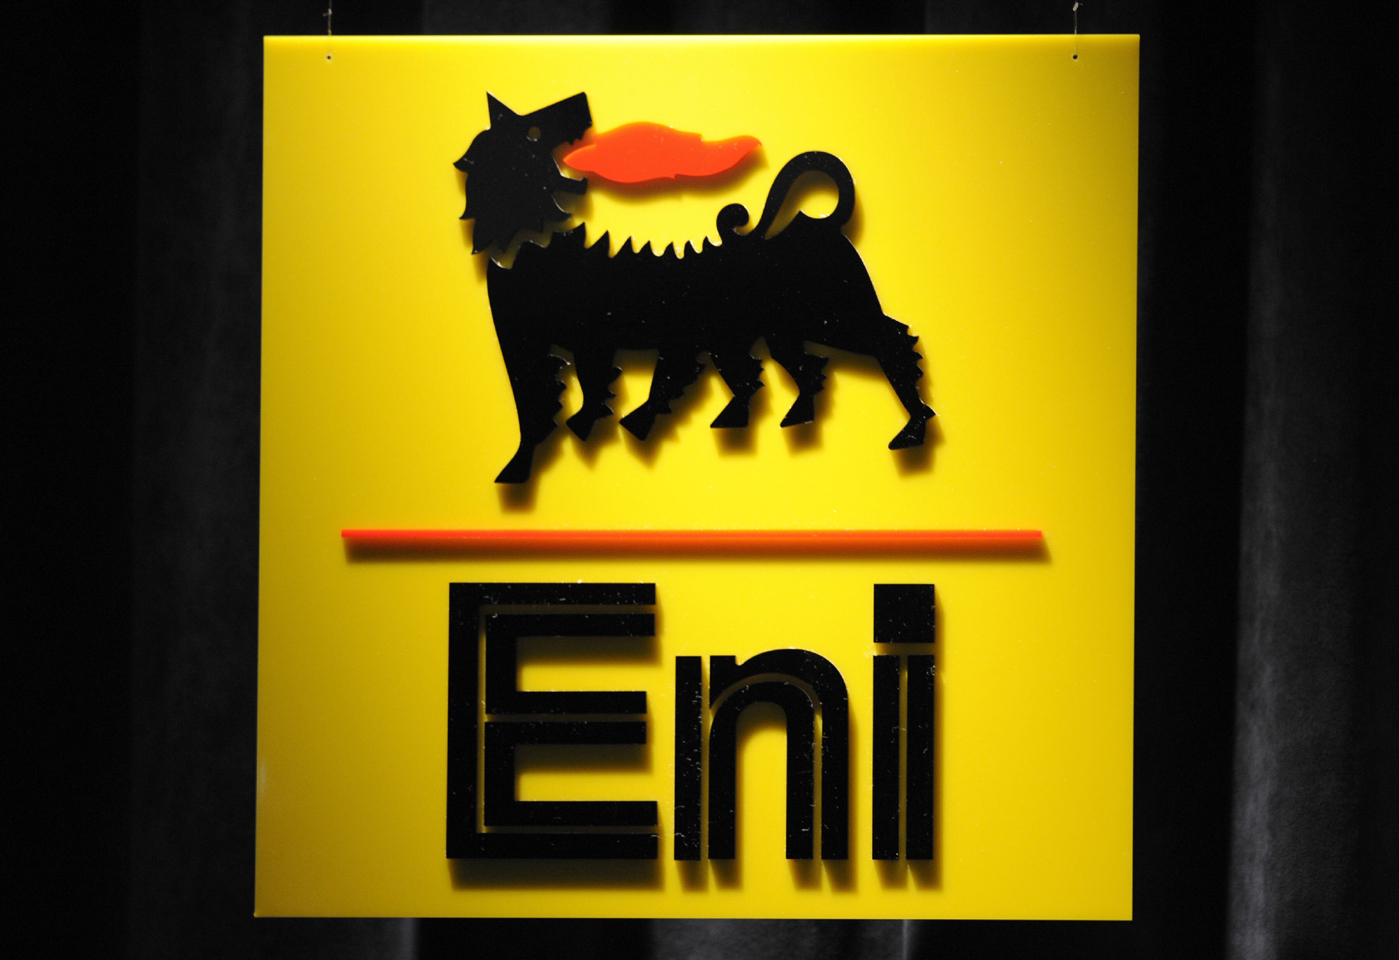 Military Vehicles For Sale >> ENI « Logos & Brands Directory